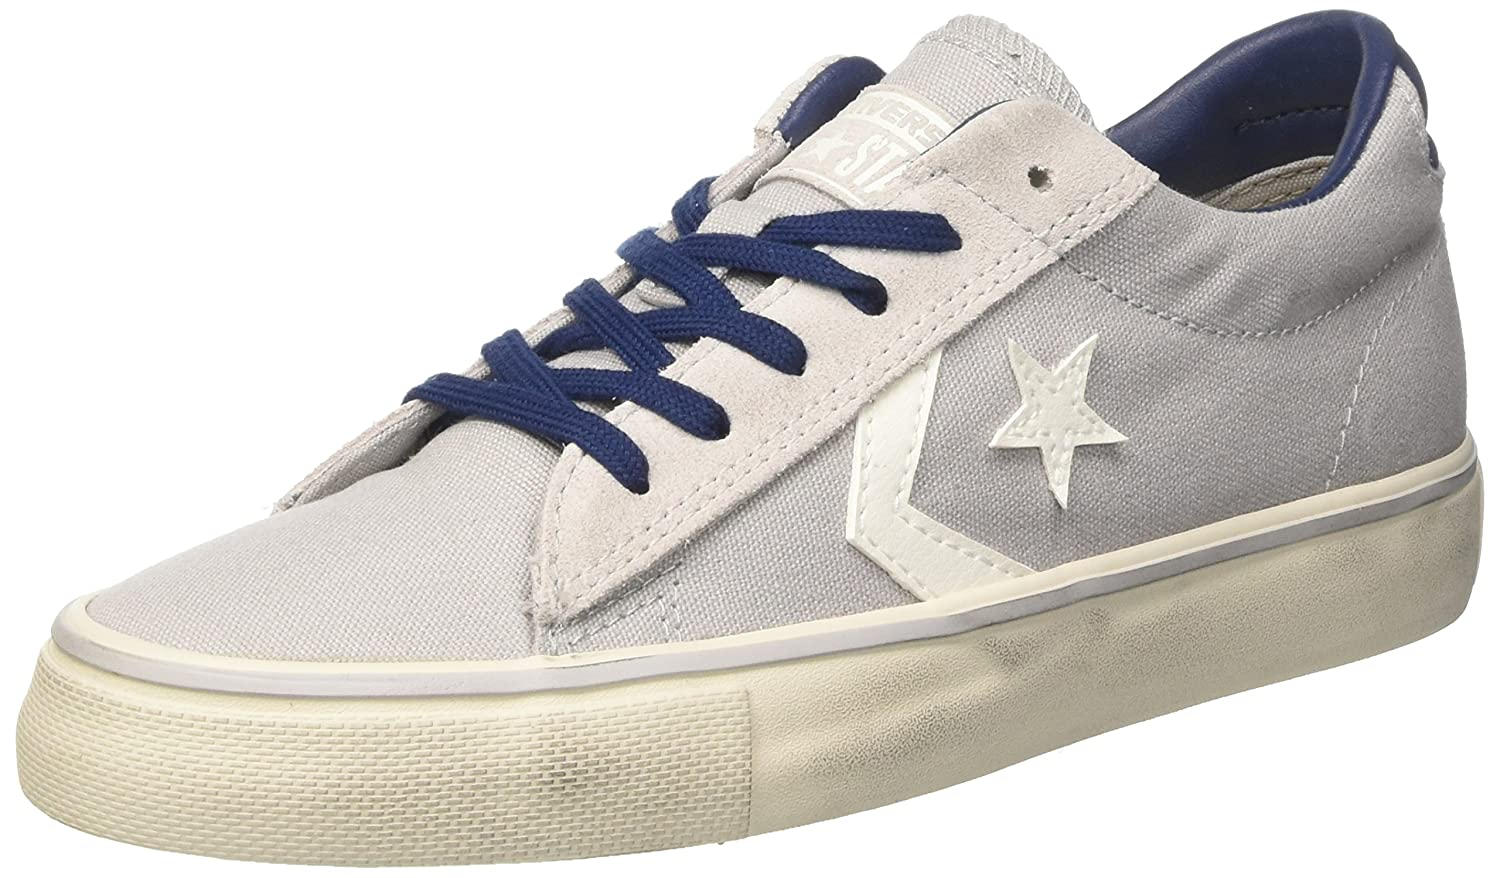 MultiCouleure (Ash gris Turtledove Navy Ash gris Turtledove Navy) Converse 156792c, Chaussures Multisport Outdoor Mixte Adulte 37 EU